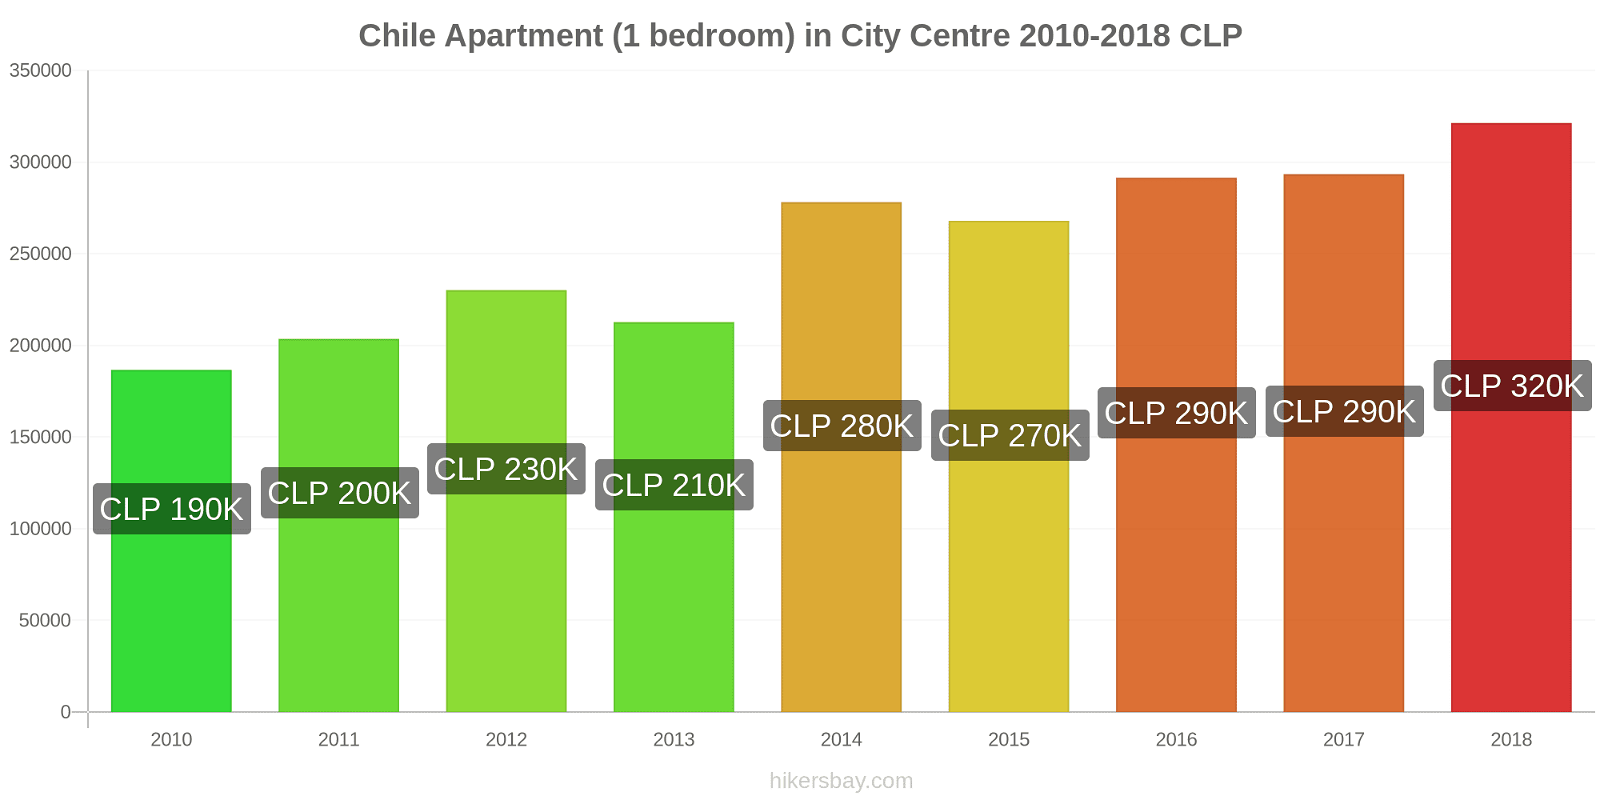 Chile price changes Apartment (1 bedroom) in City Centre hikersbay.com